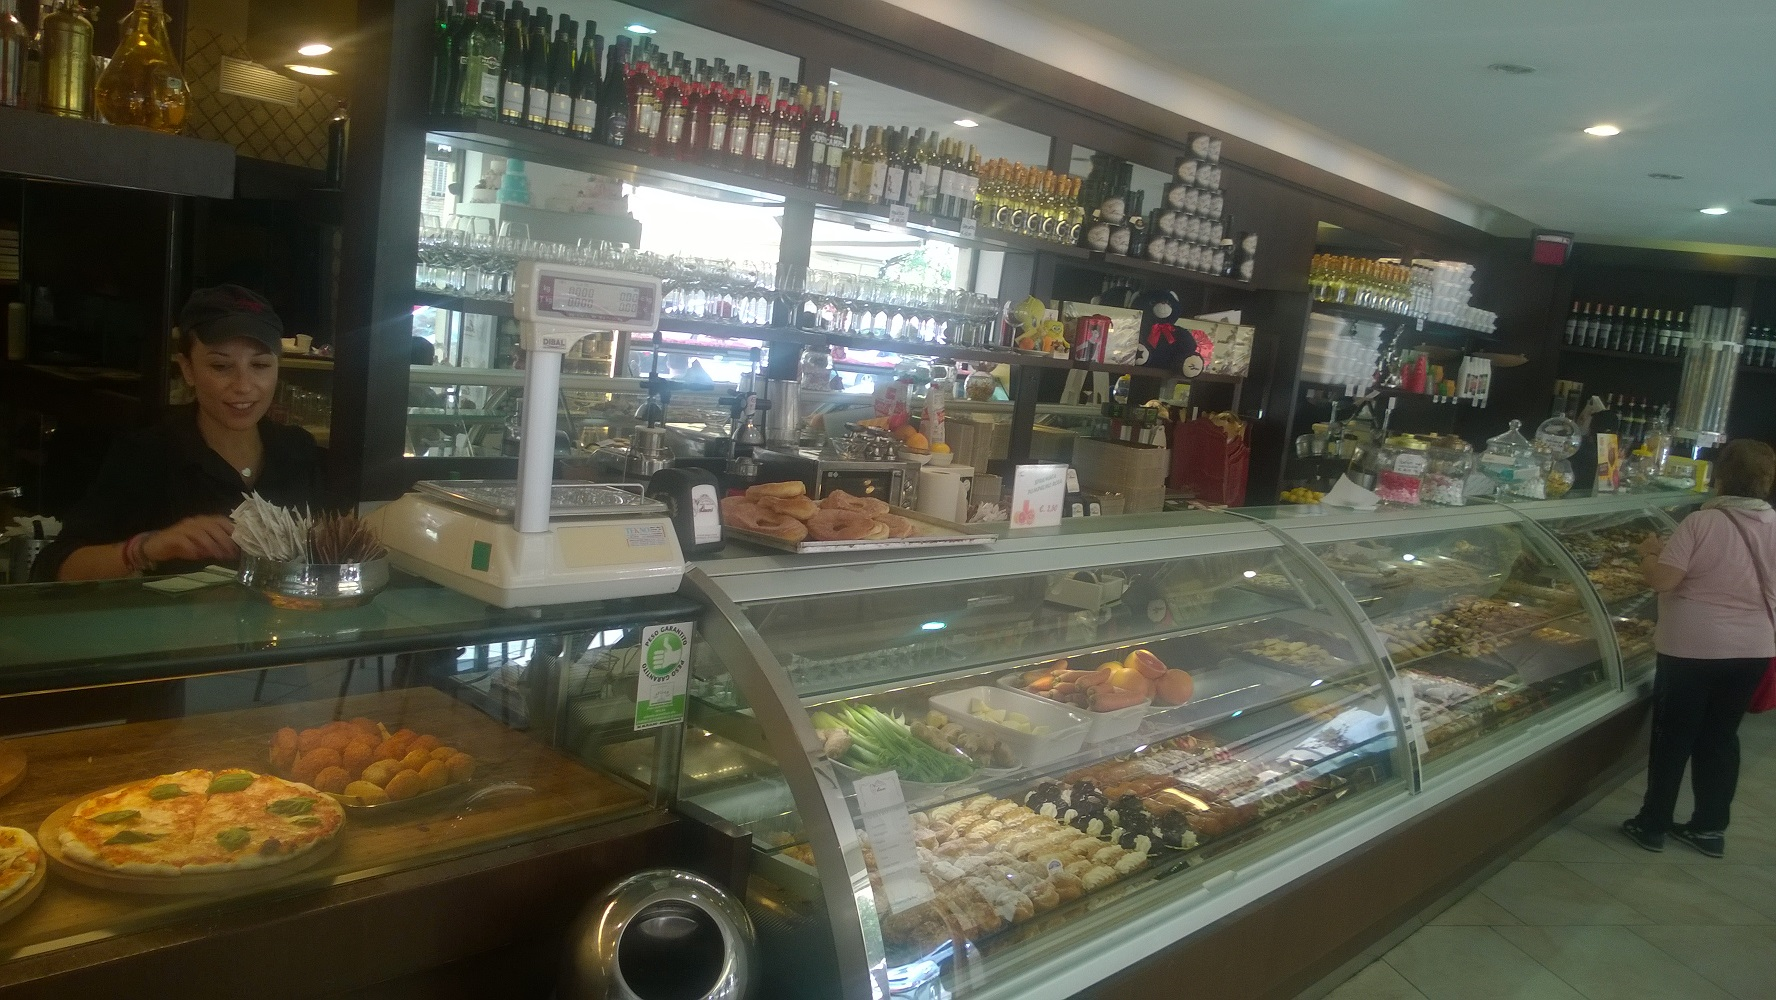 Classic & divine pastries at Linari Pasticceria in old Testaccio neighborhood, Roma